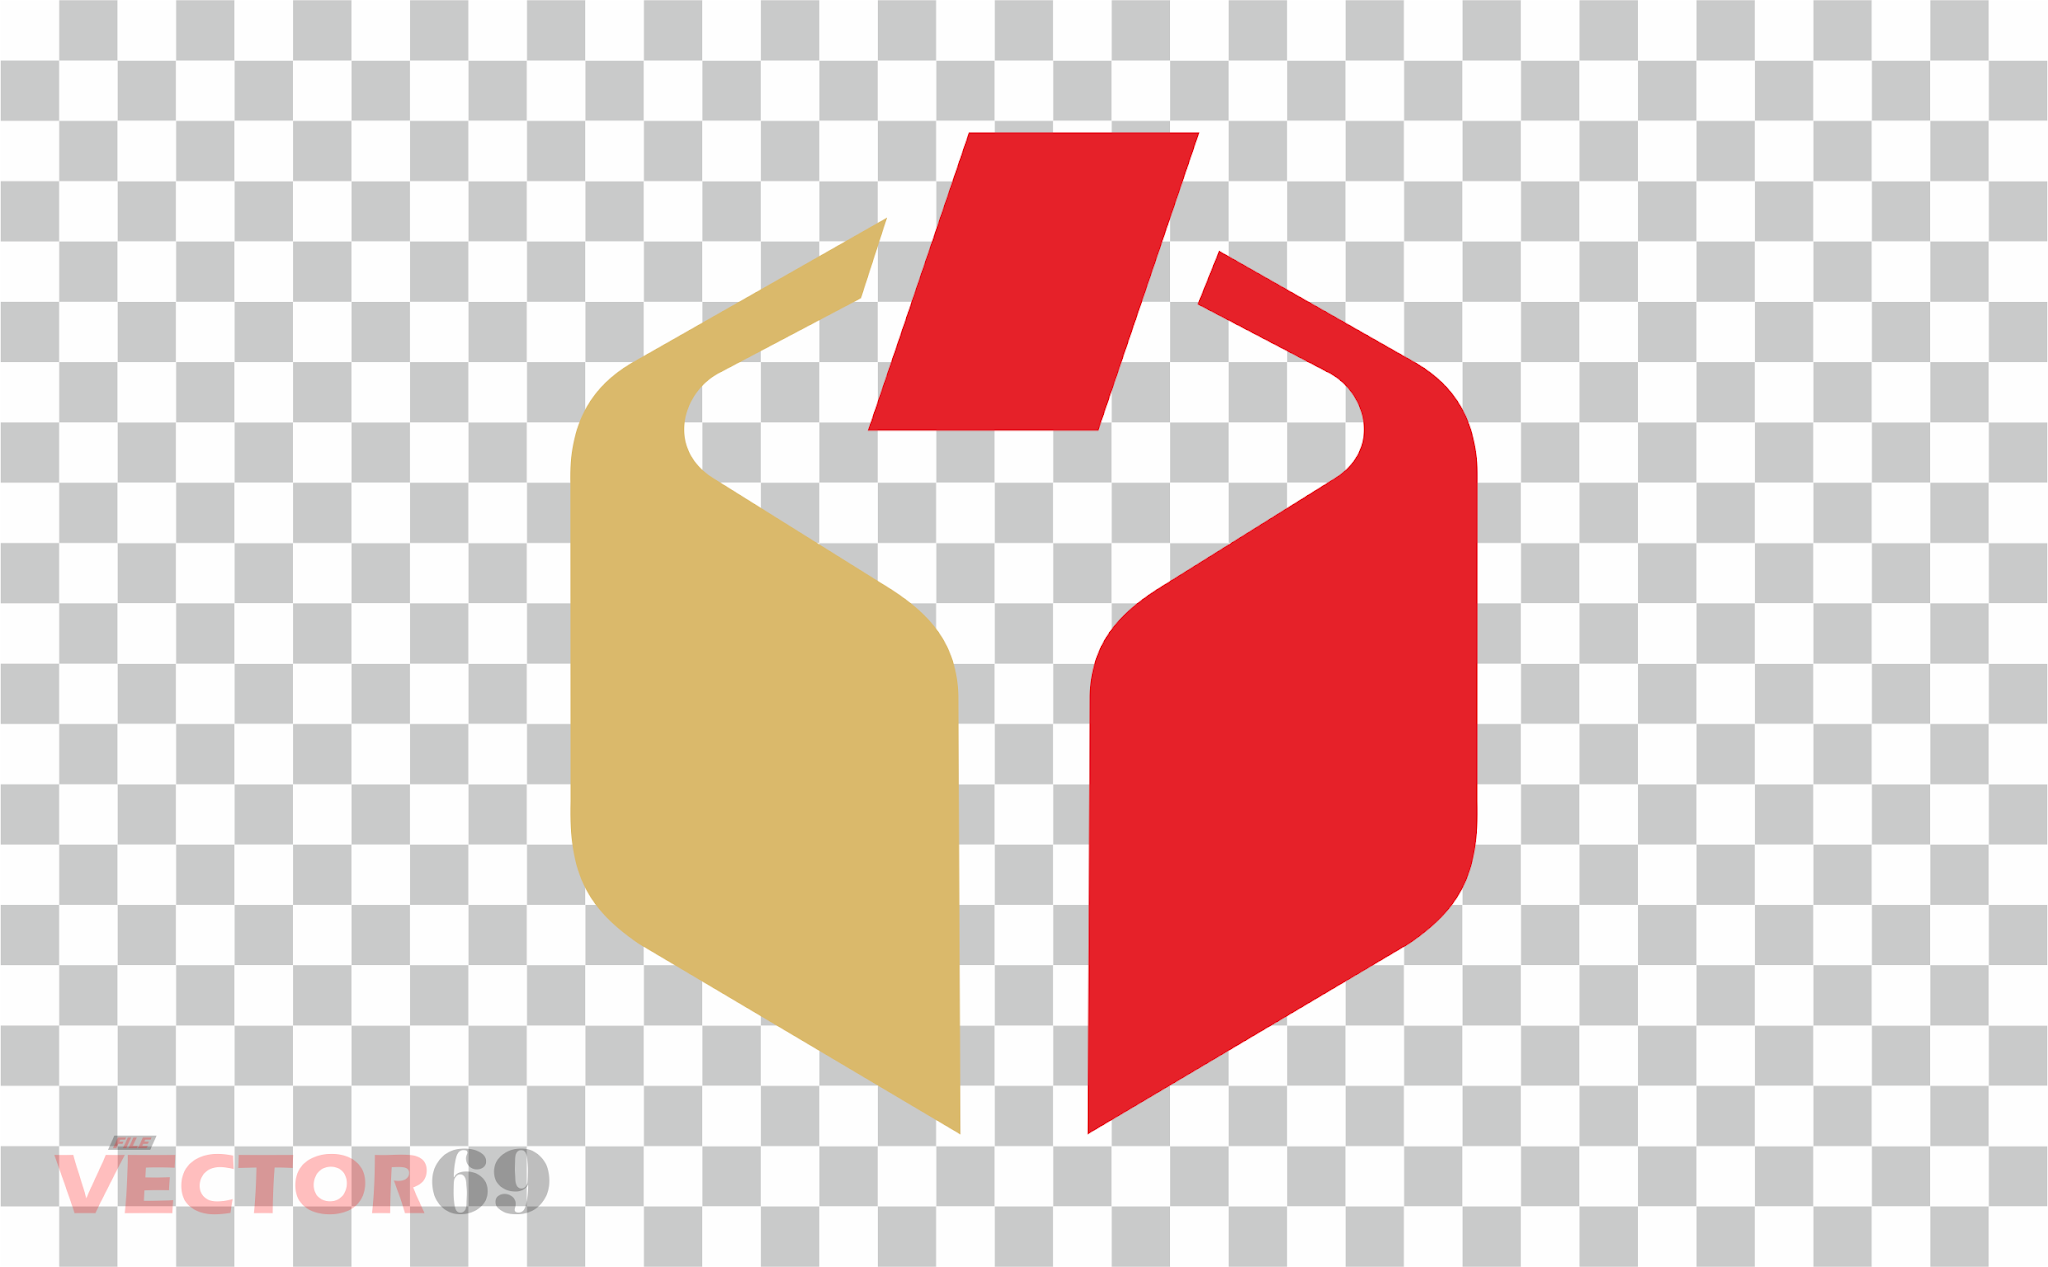 BAWASLU Icon - Download Vector File PNG (Portable Network Graphics)